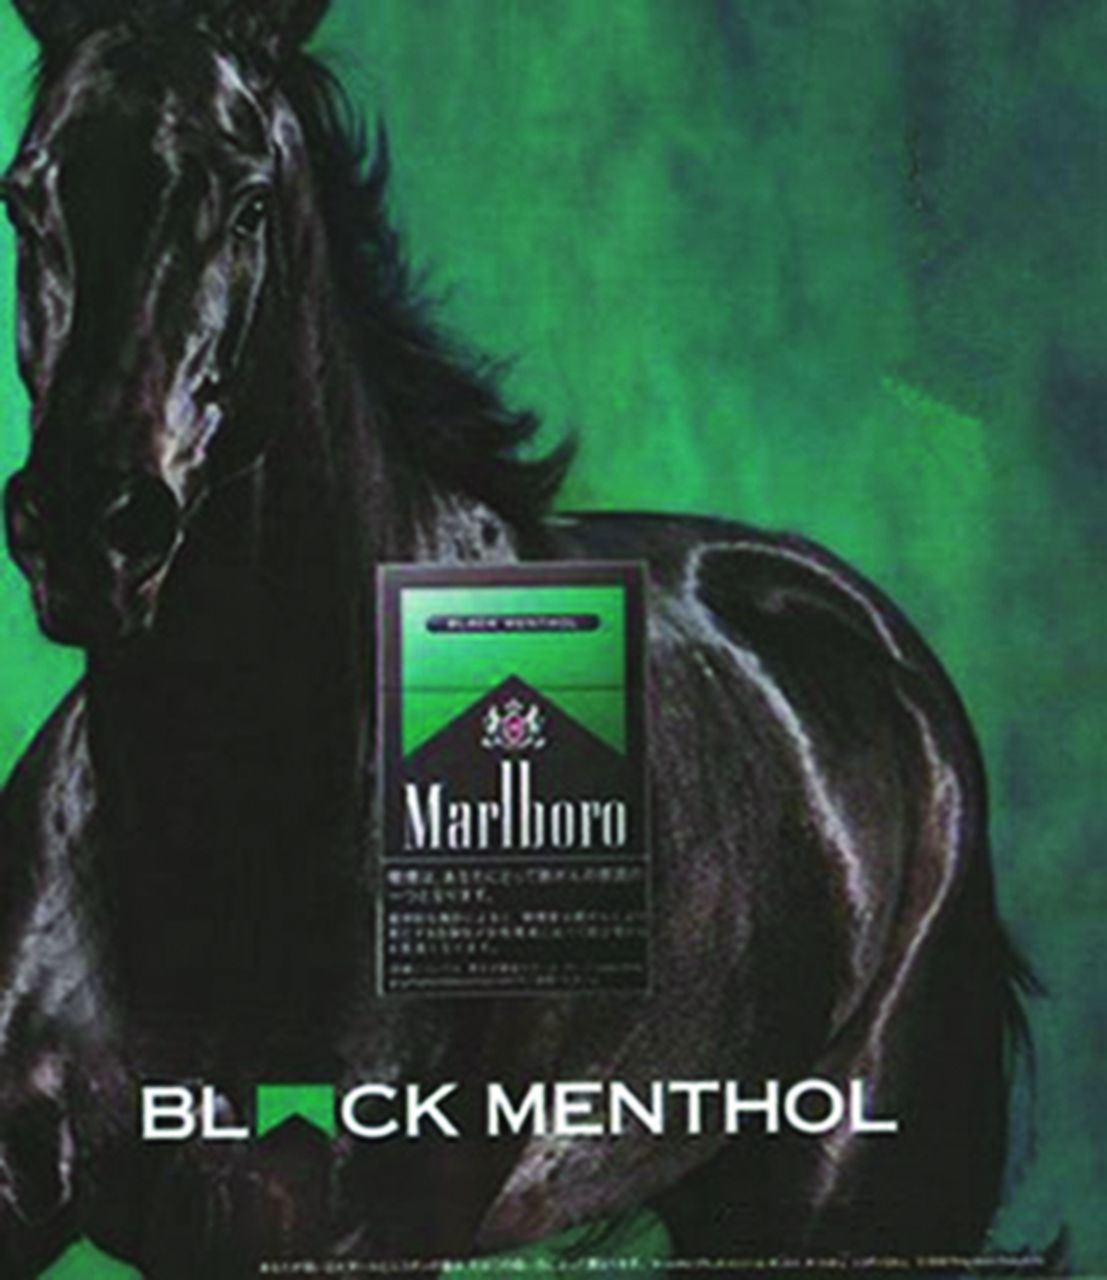 Into the black: Marlboro brand architecture, packaging and